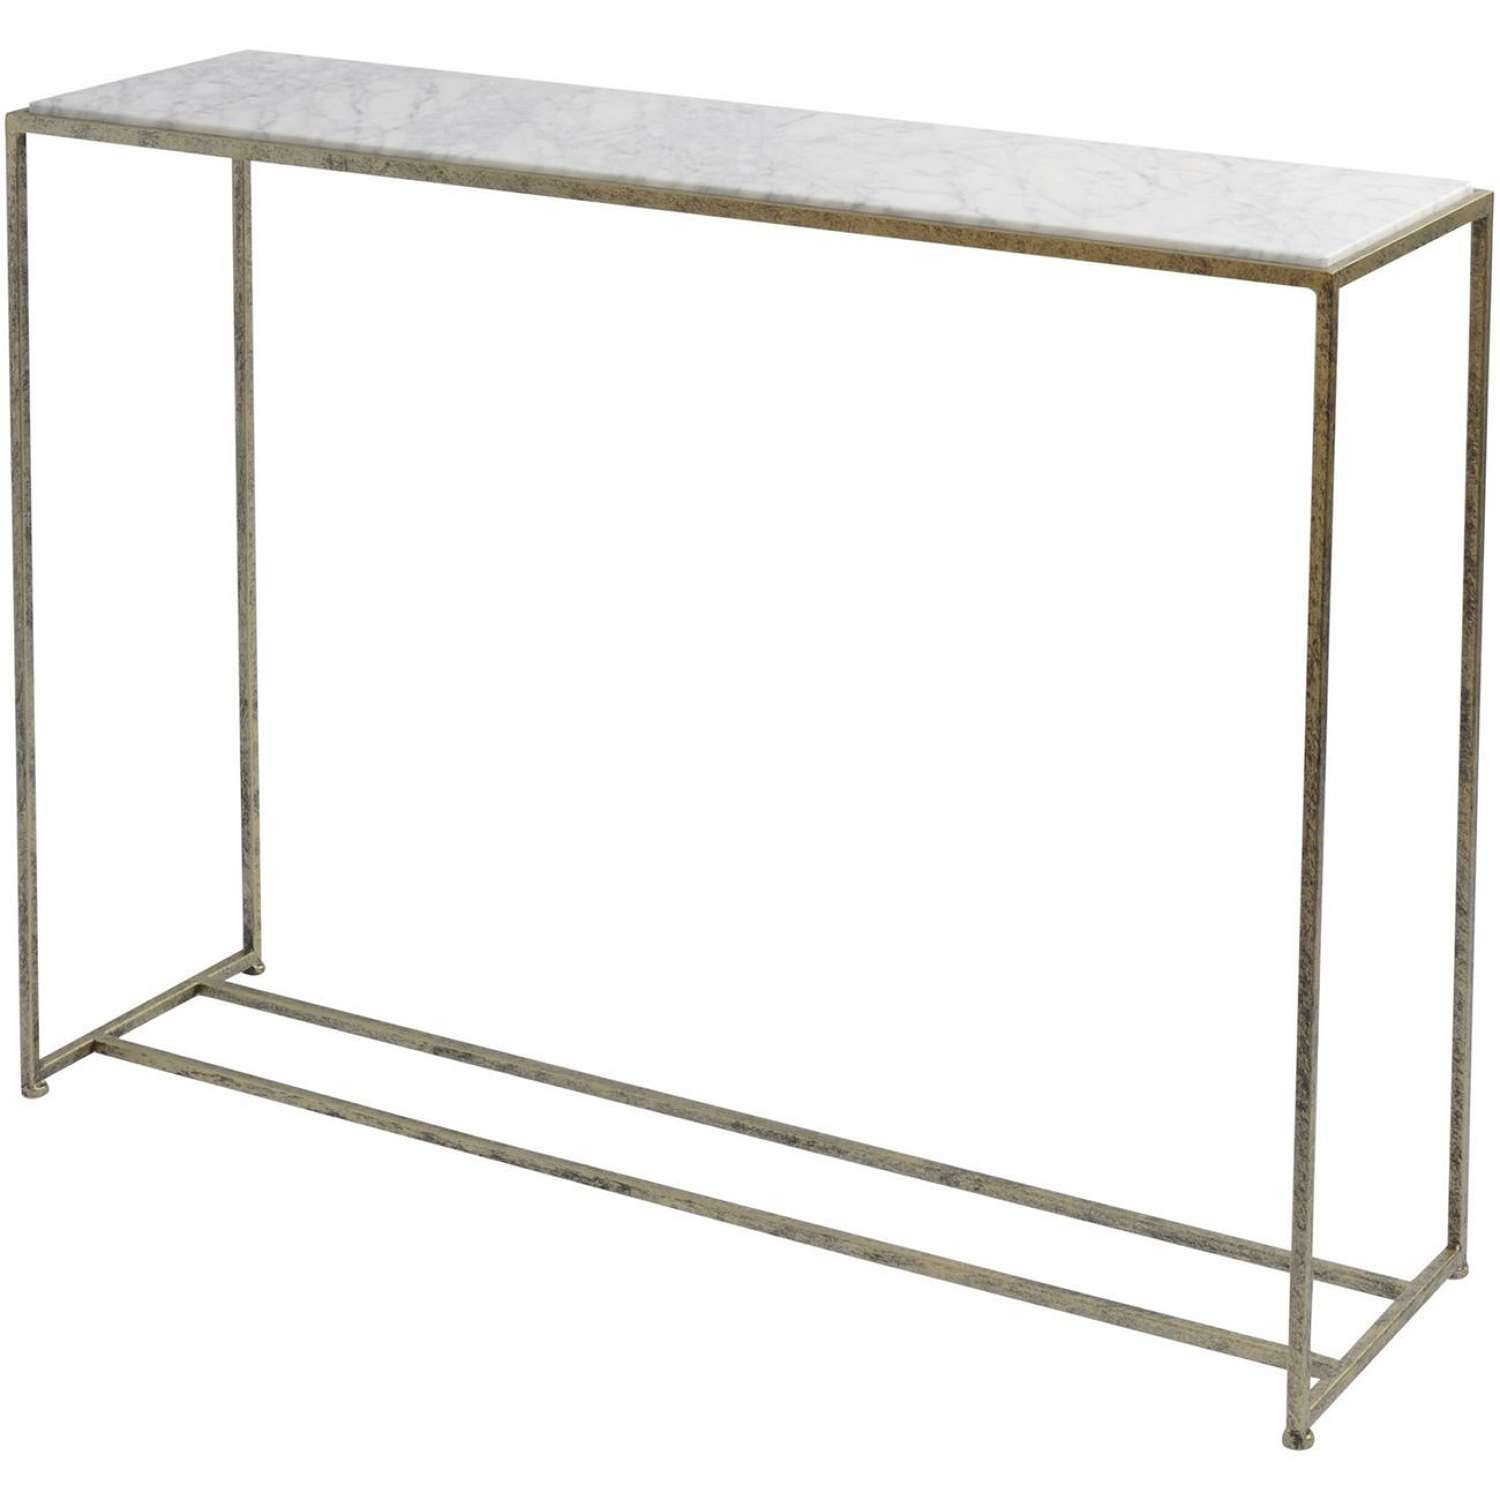 Gold Framed Console Table with White Marble Top